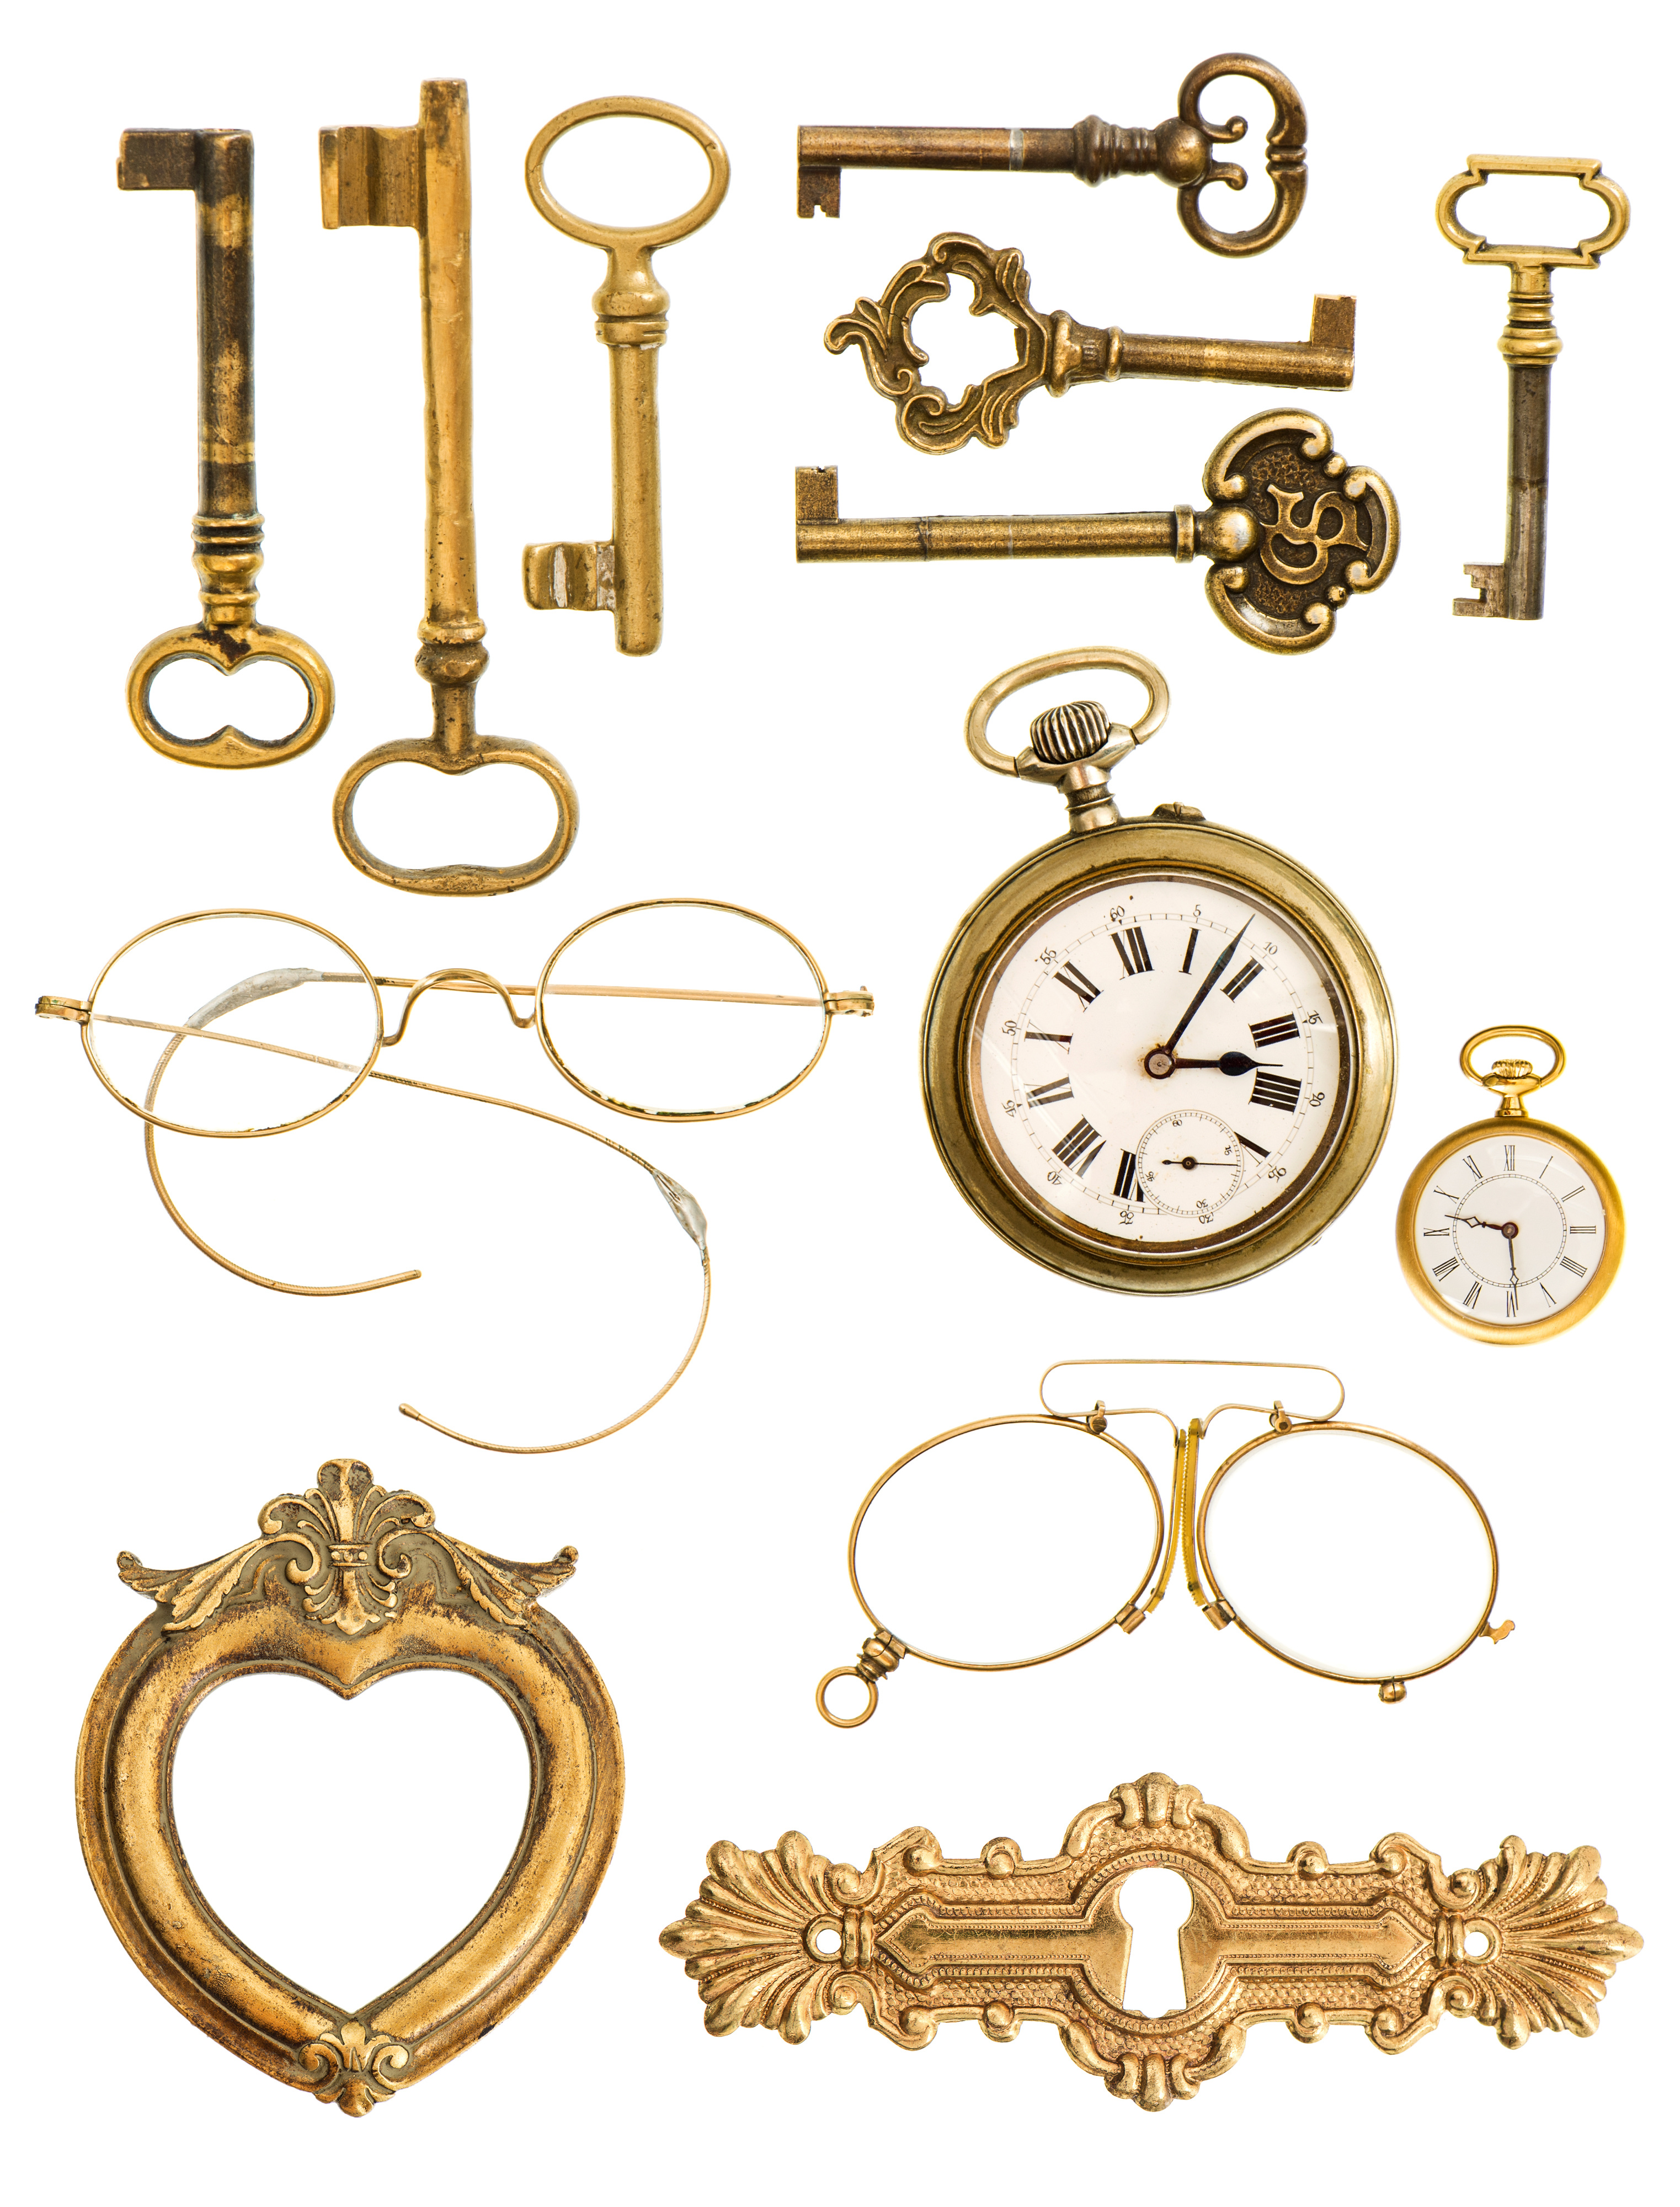 collection of golden vintage accessories. antique keys, clock, frame, glasses isolated on white background